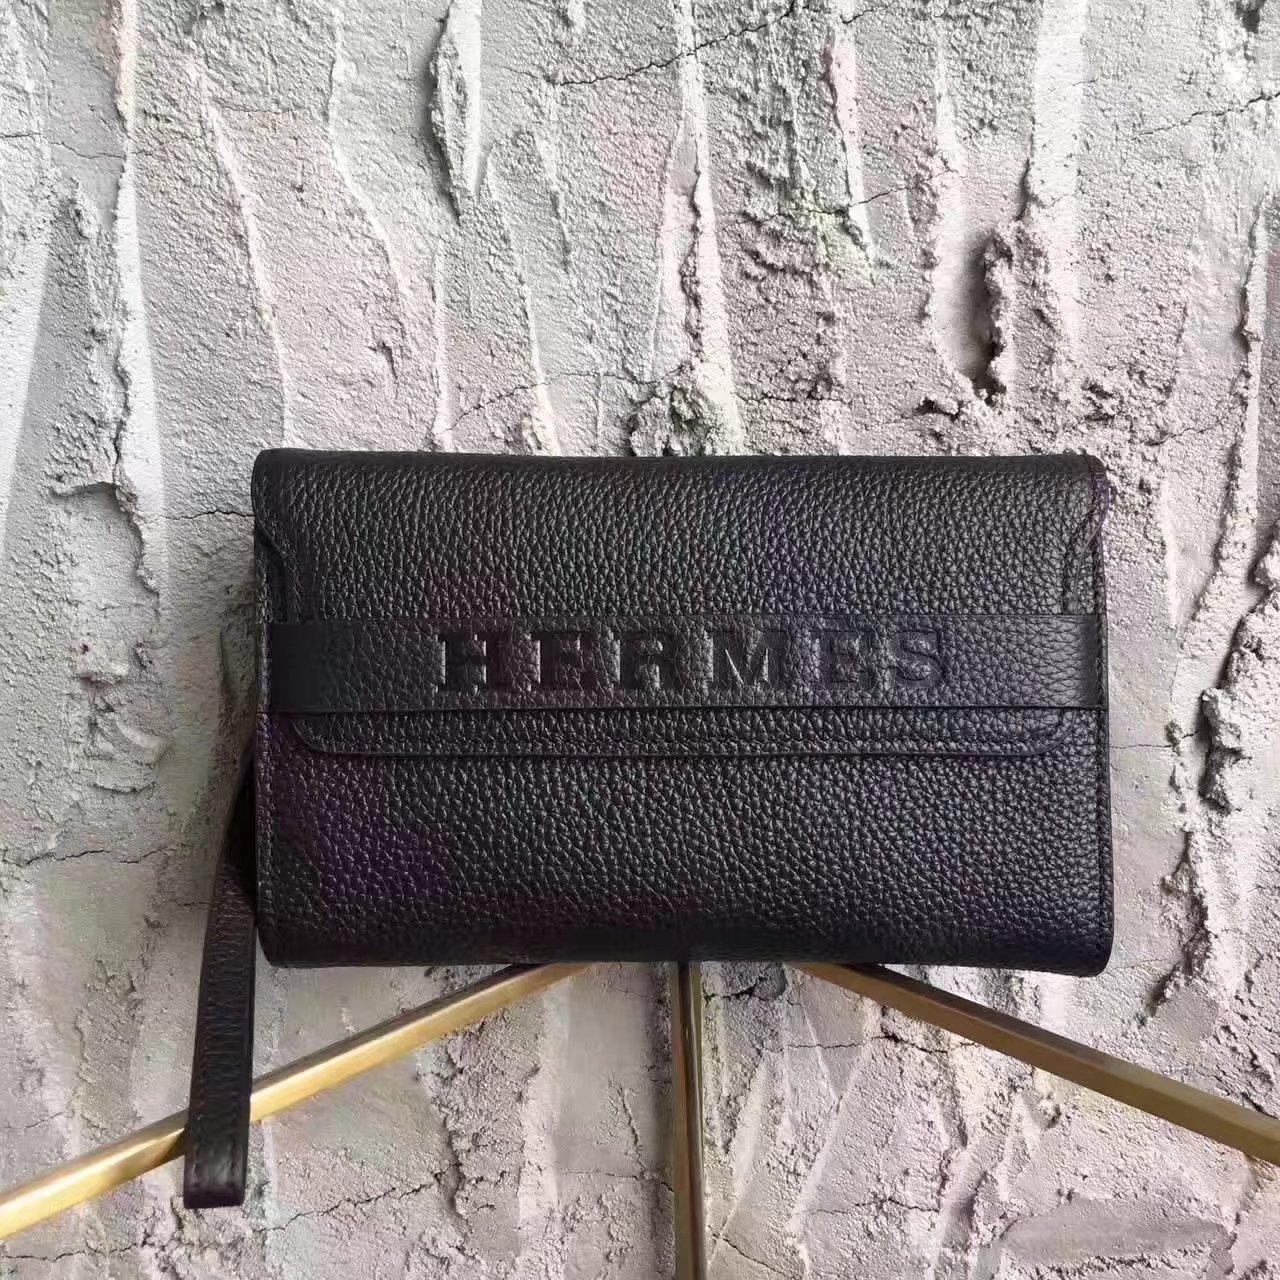 Hermes H001 Men Leather Clutch Bag in Black